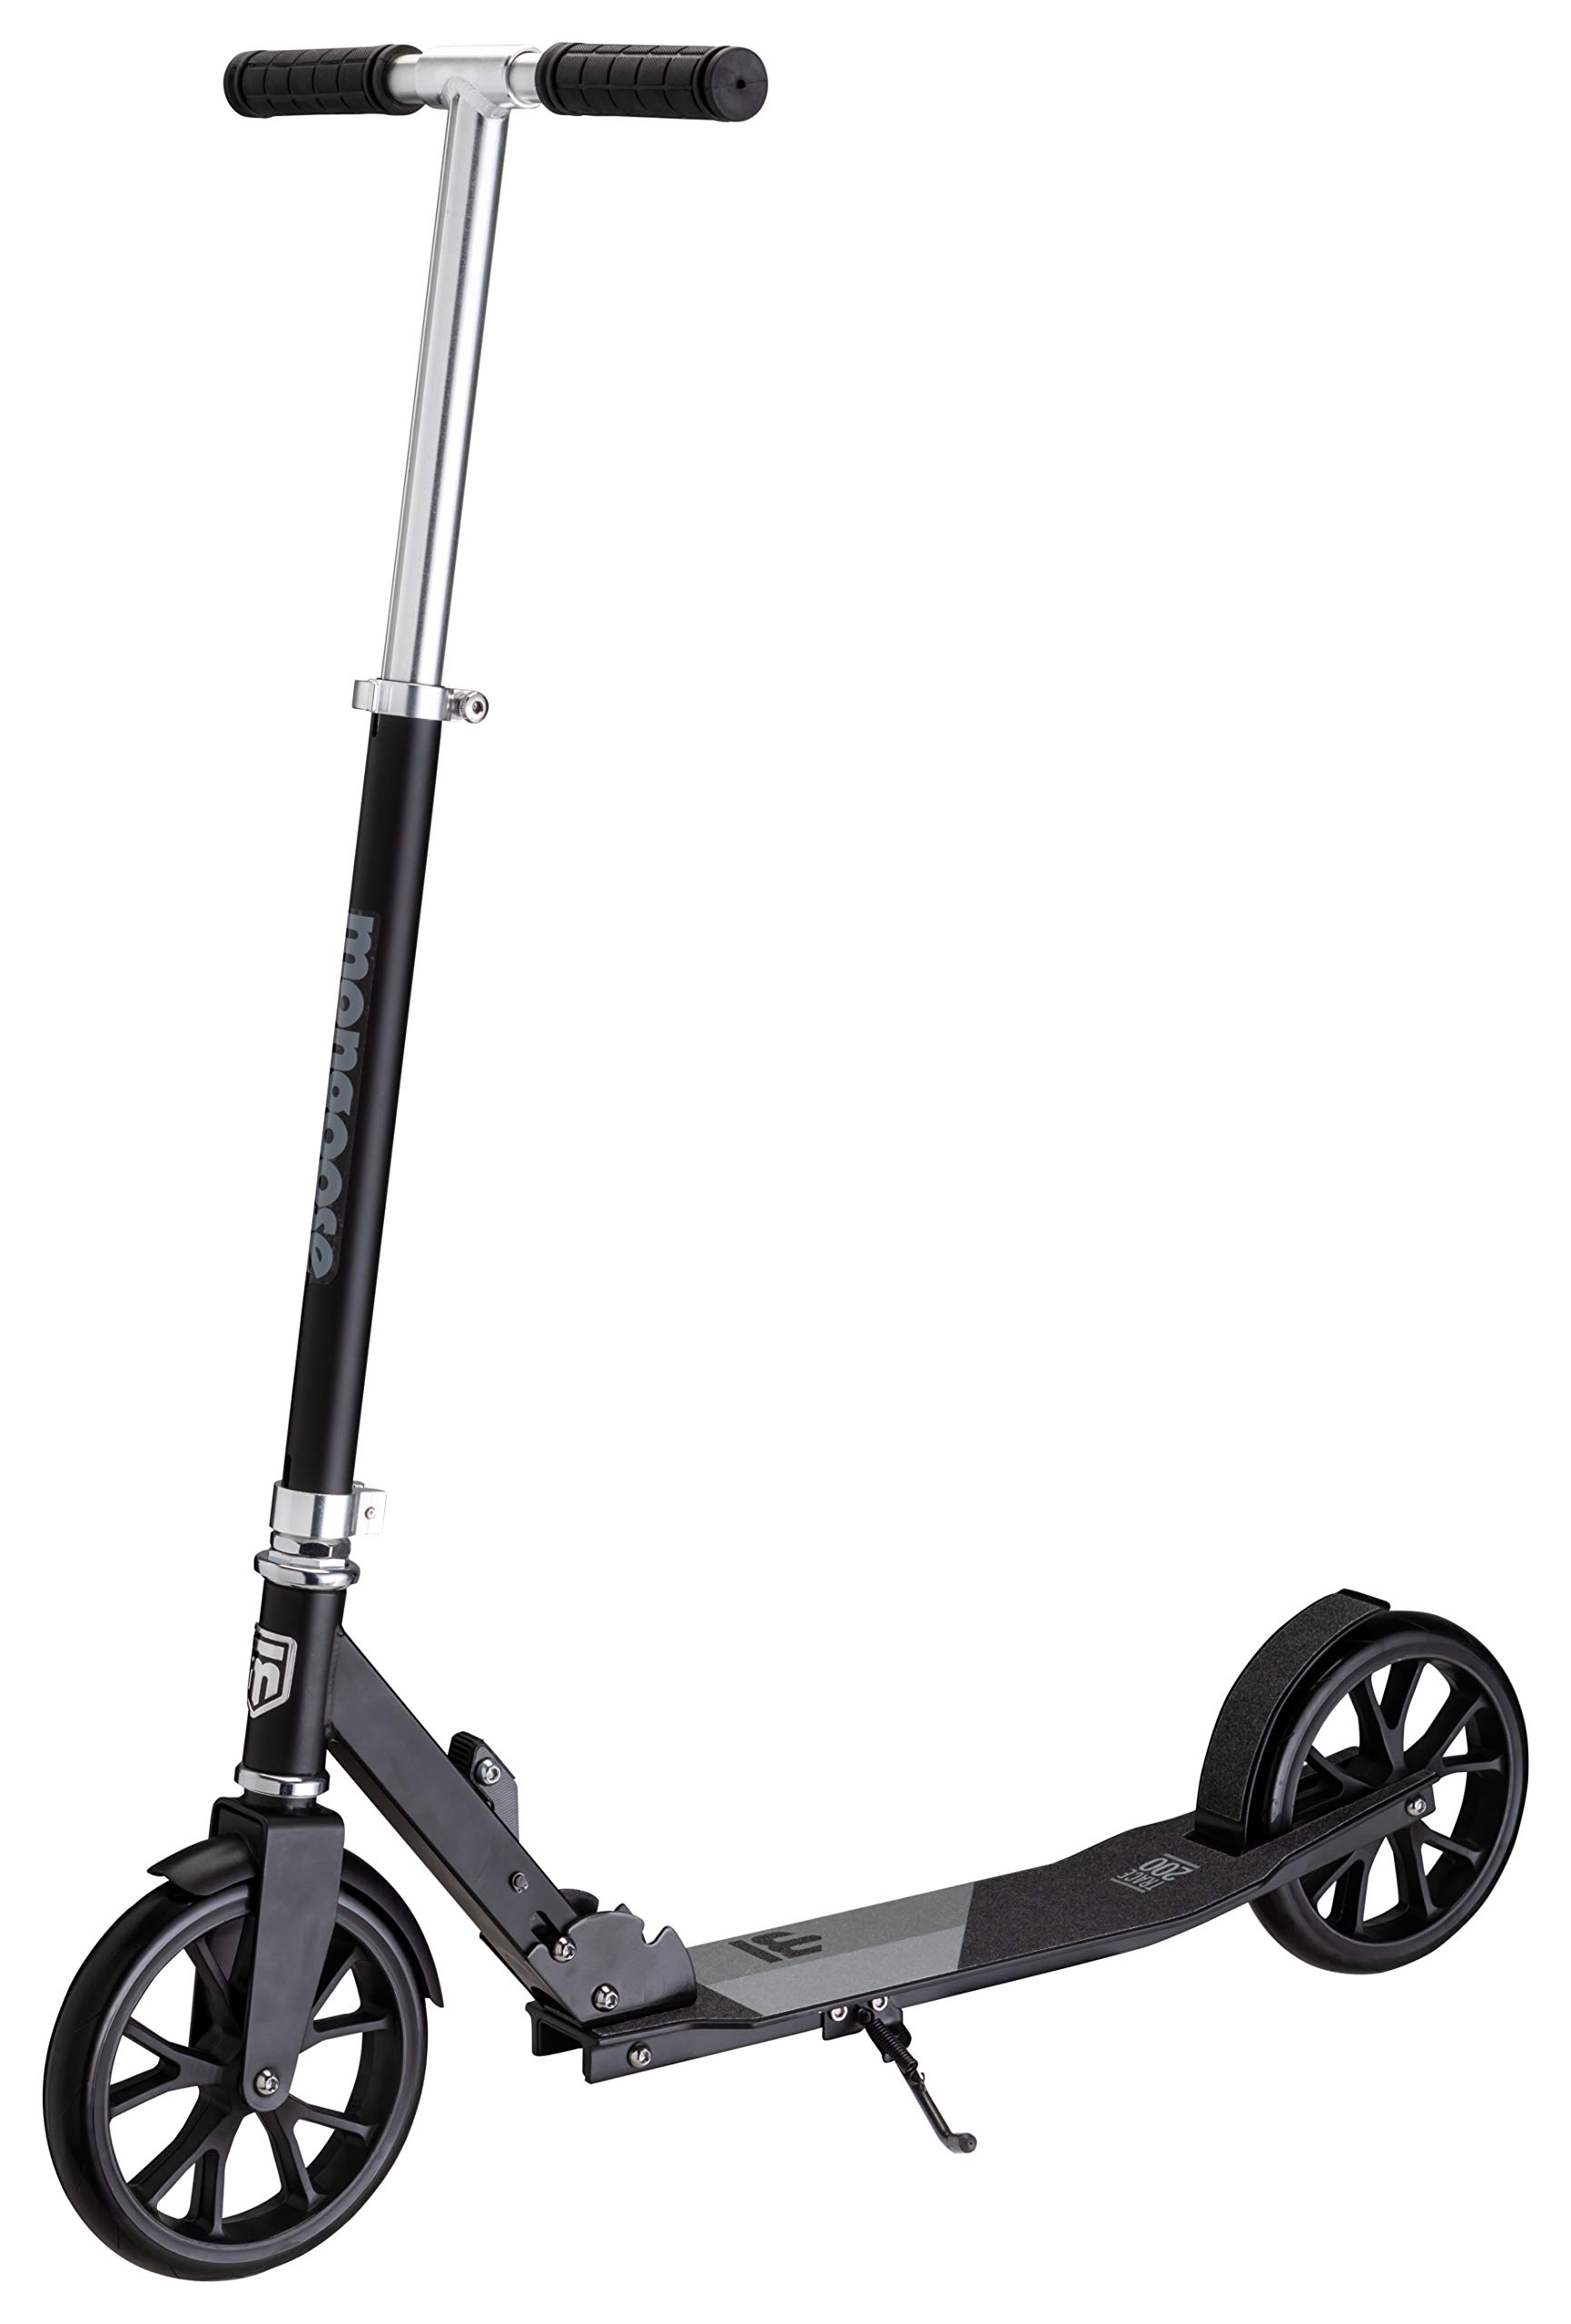 Mongoose Trace 200 Foldable Kick Scooter, Featuring Quick-Release Adjustable Height Handlebars with 205mm Wheels, Black/Grey